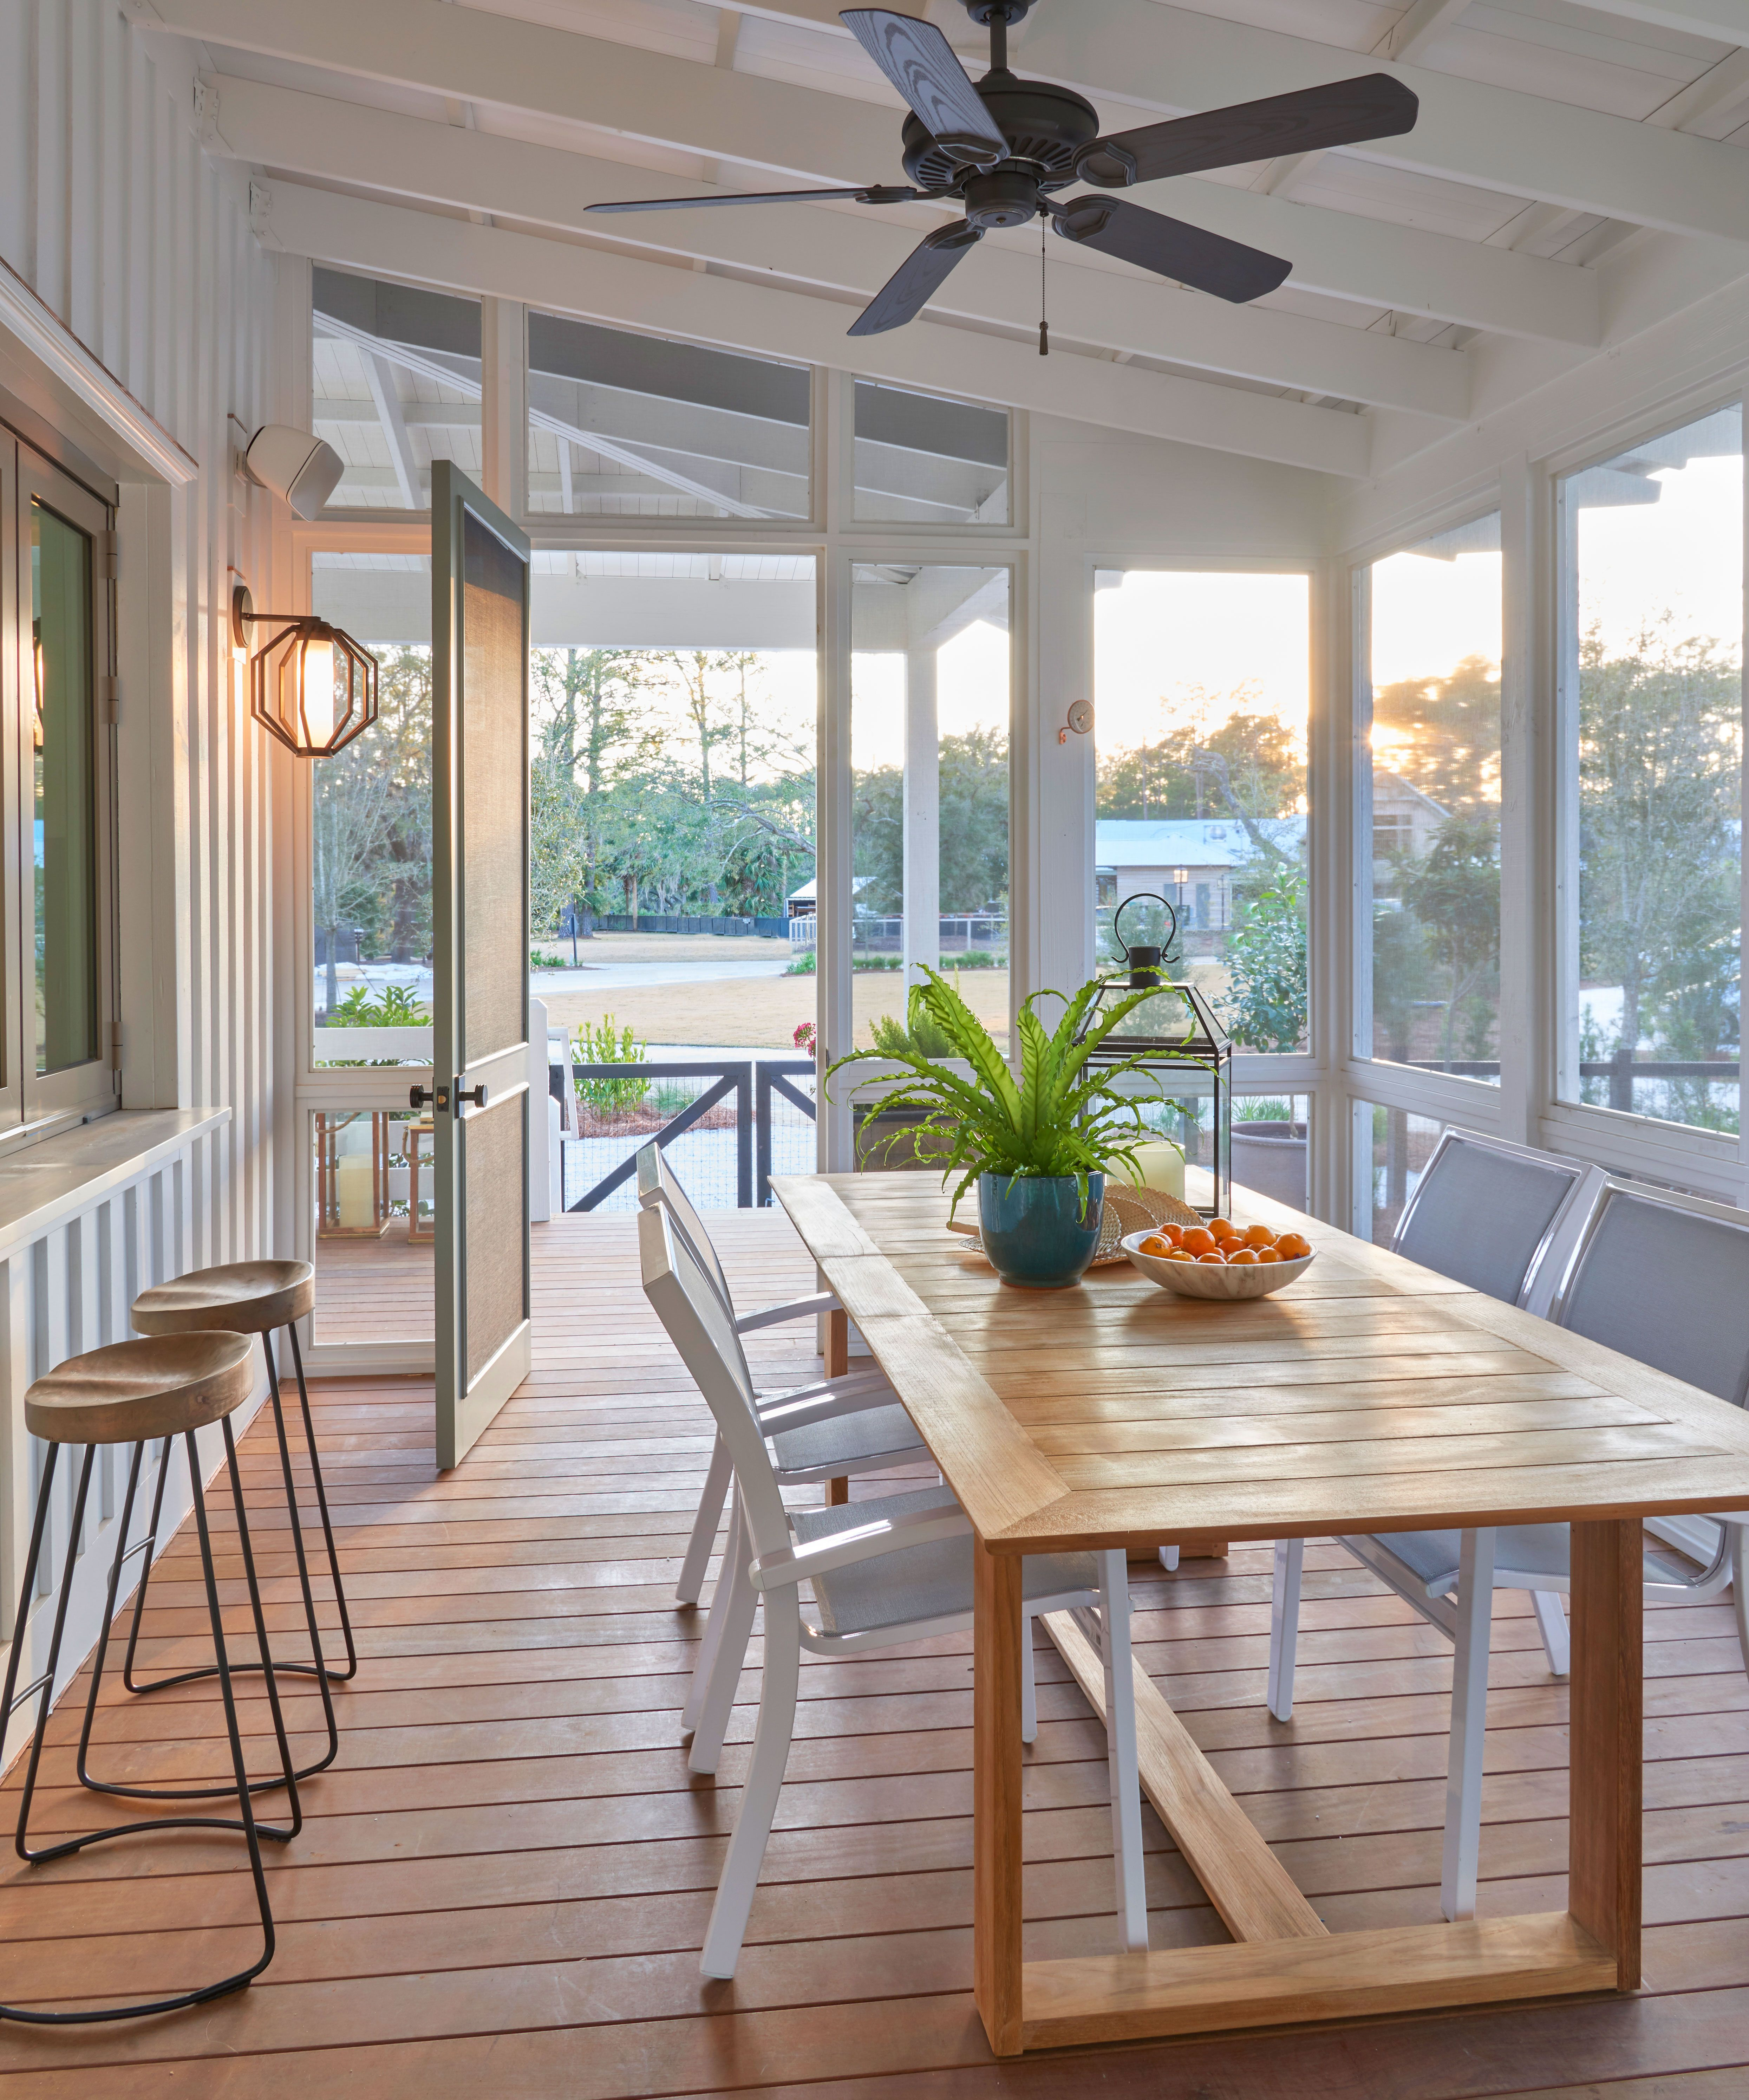 Back Porch Design Ideas: For Sale: This Lowcountry Bungalow Is A Perfect Blend Of